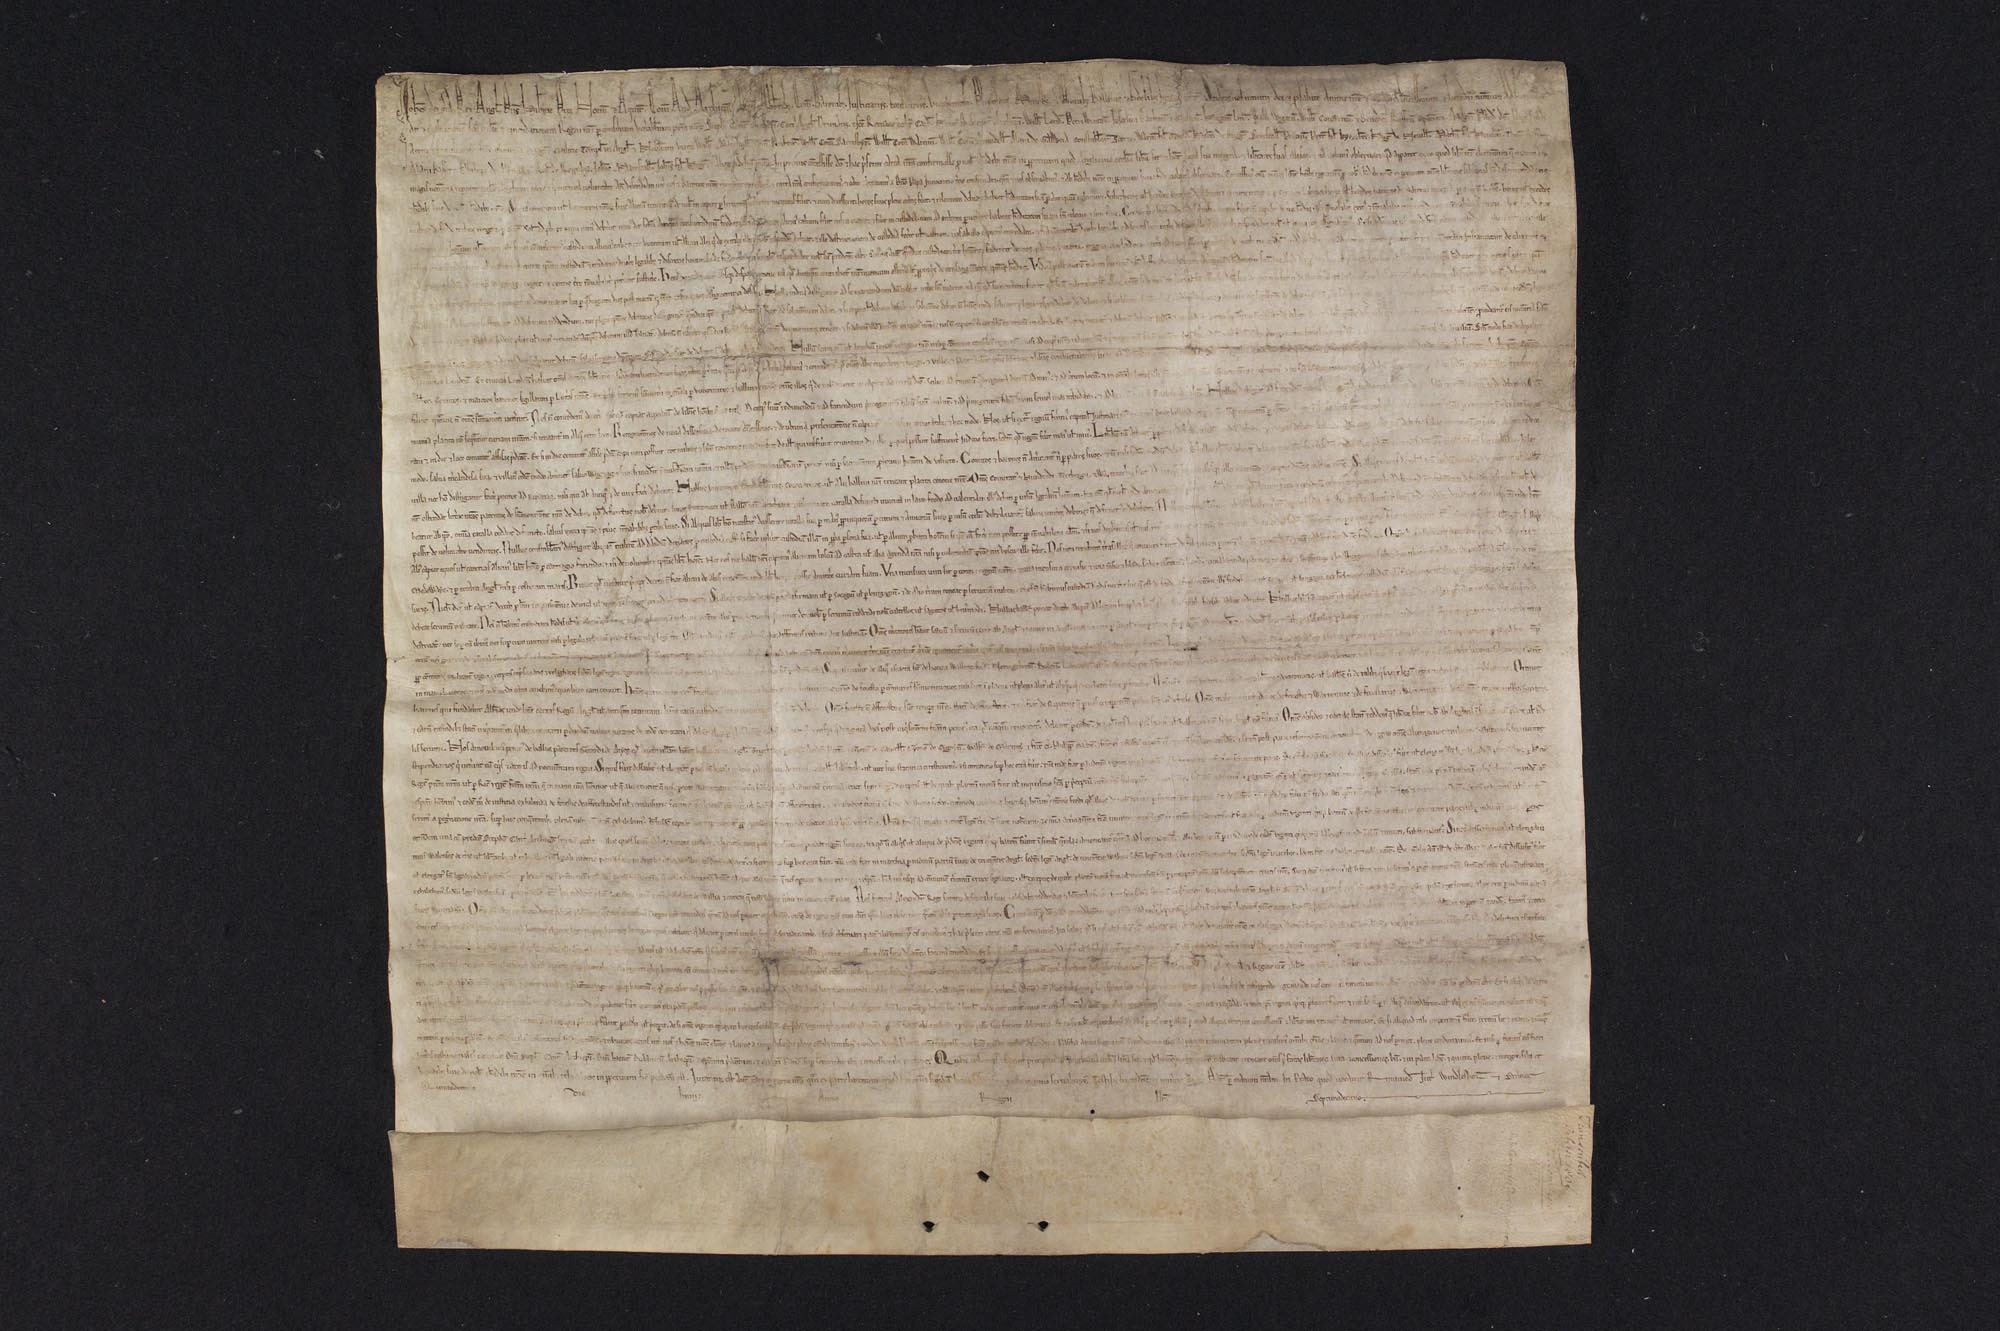 a photo of a handwritten document in Latin